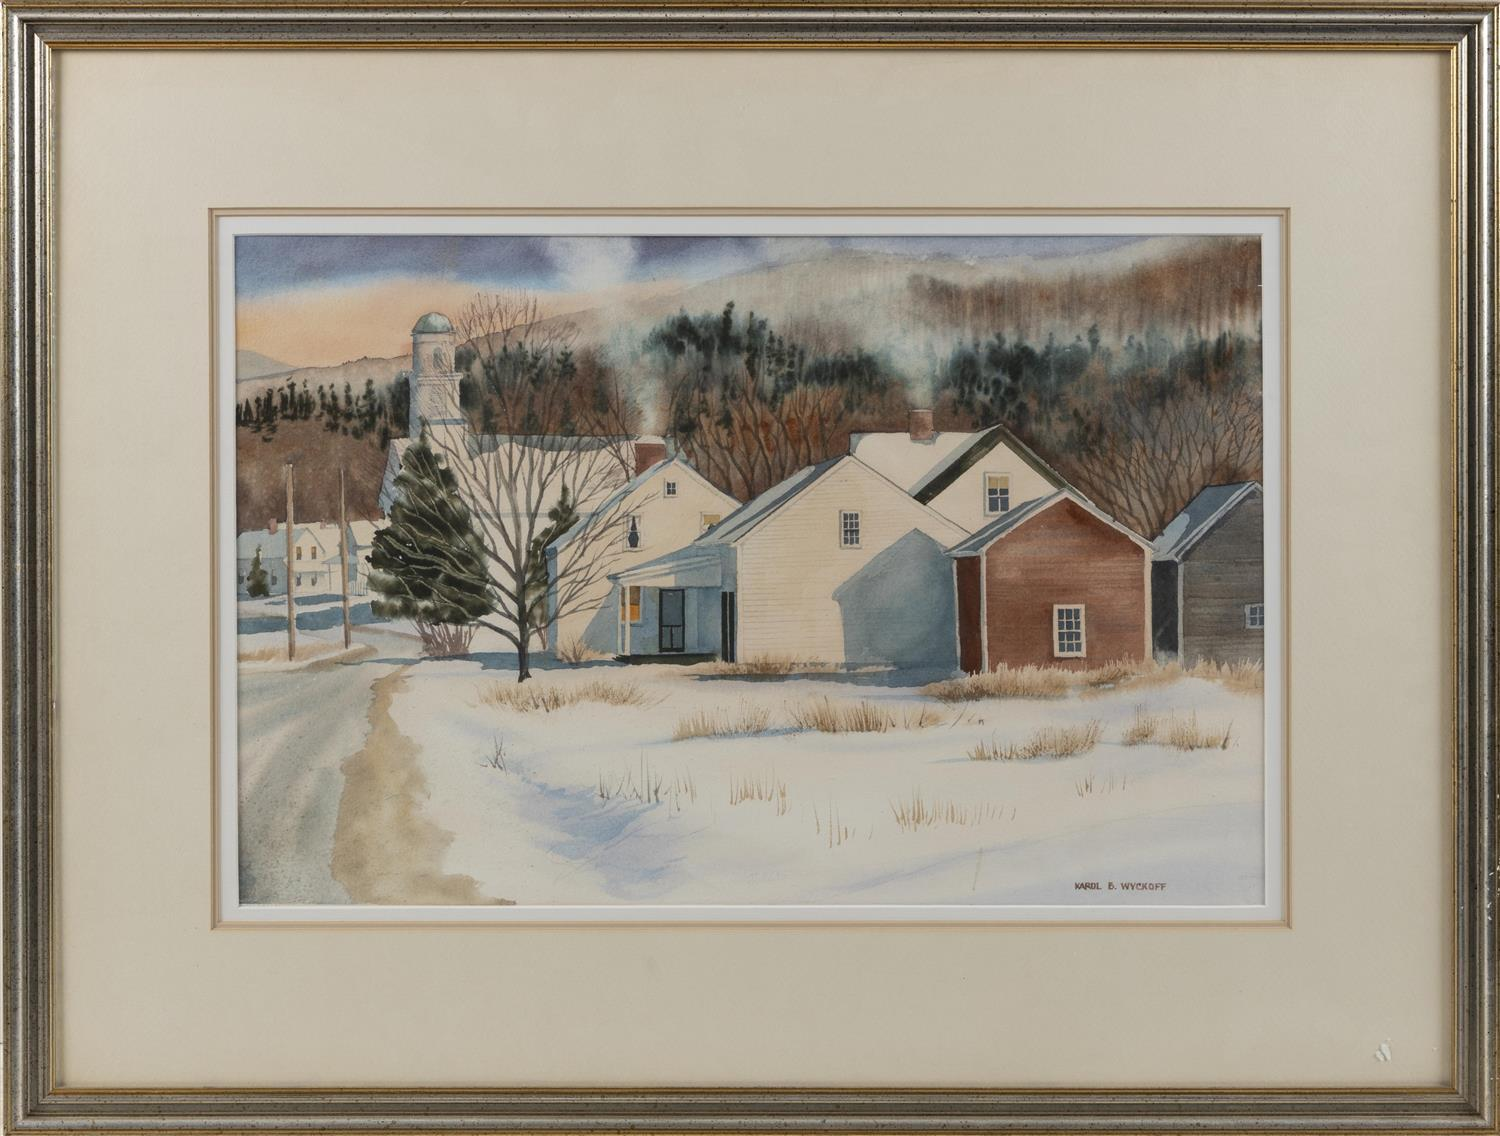 "KAROL B. WYCKOFF, Cape Cod, Massachusetts, Contemporary, A New England town in winter., Watercolor on paper, 13.75"" x 21.25"" sight...."